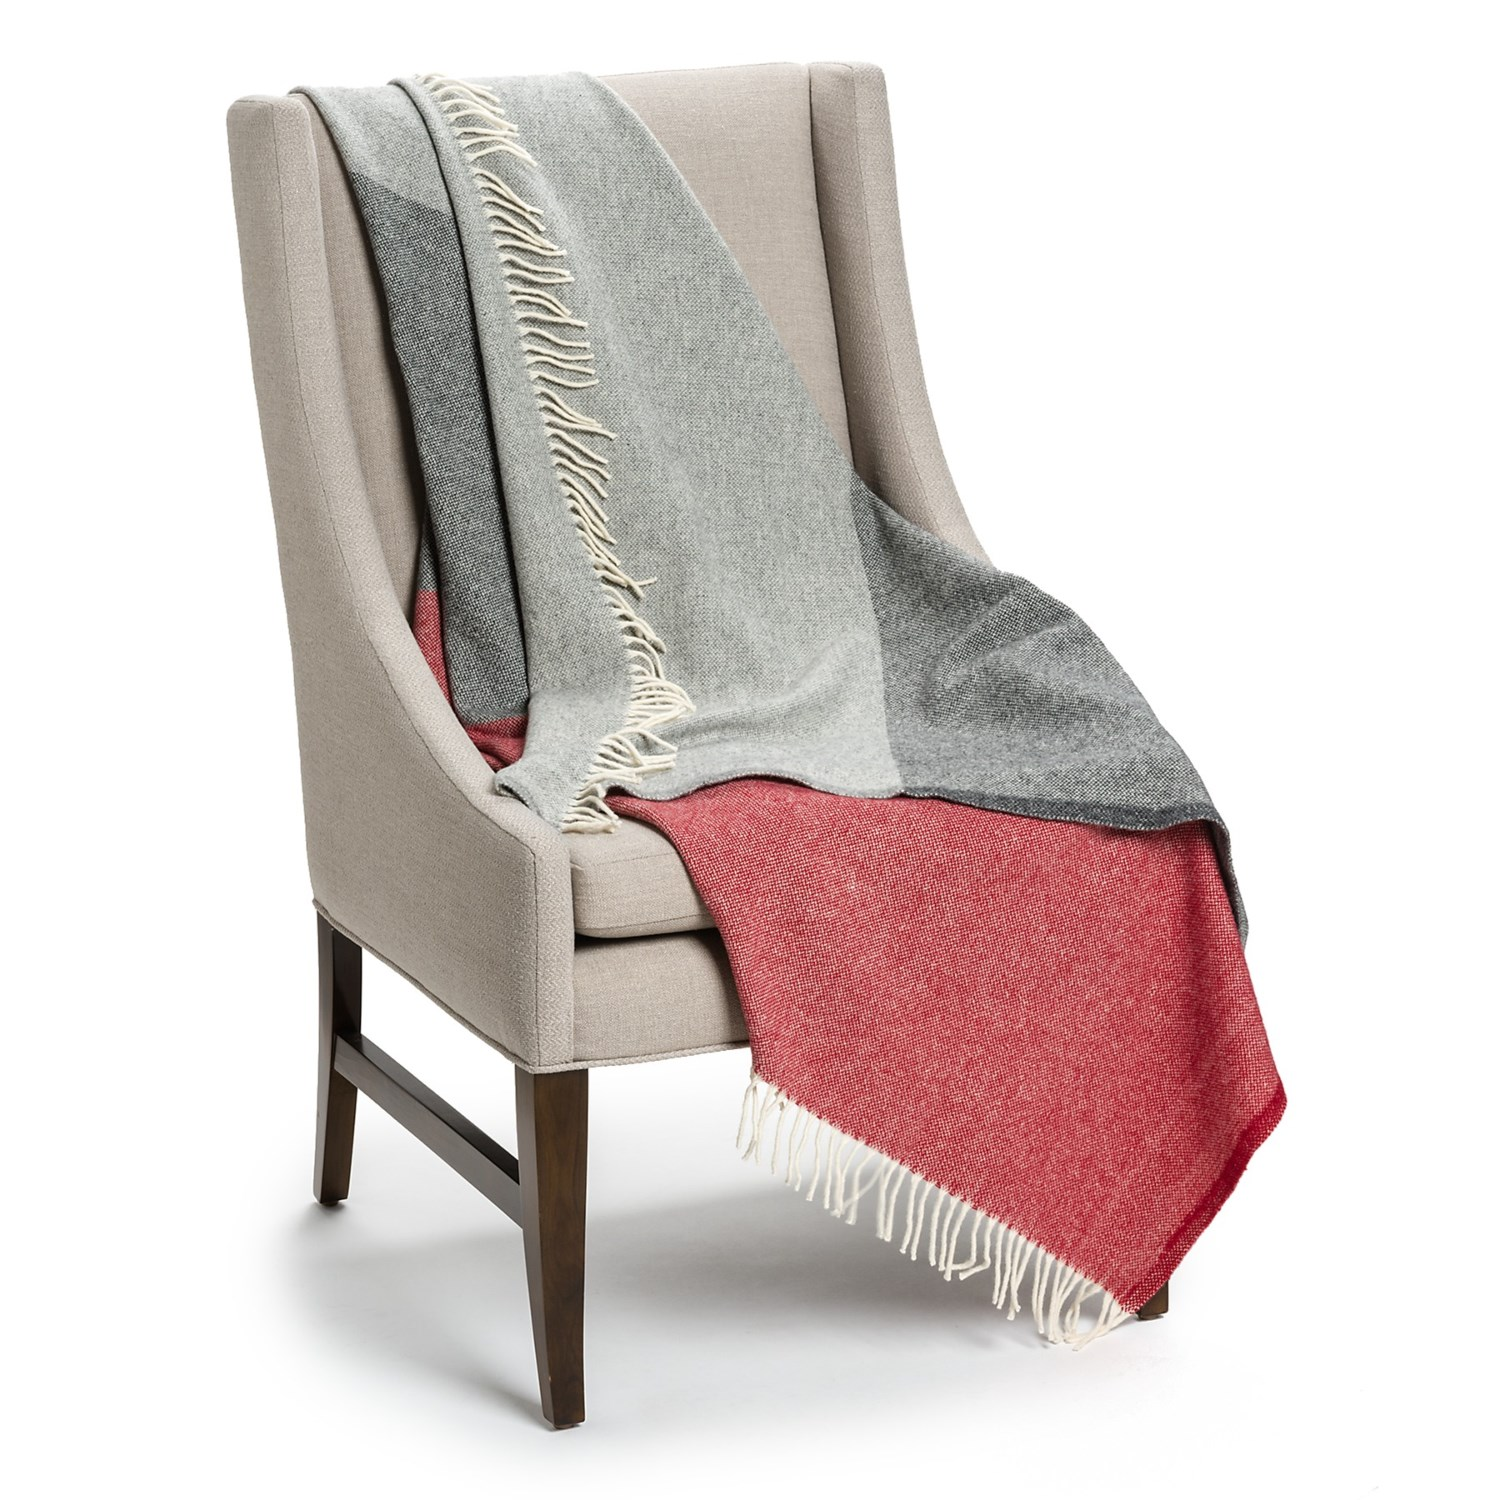 Faribault Woolen Mills Co Throw Blanket Merino Wool